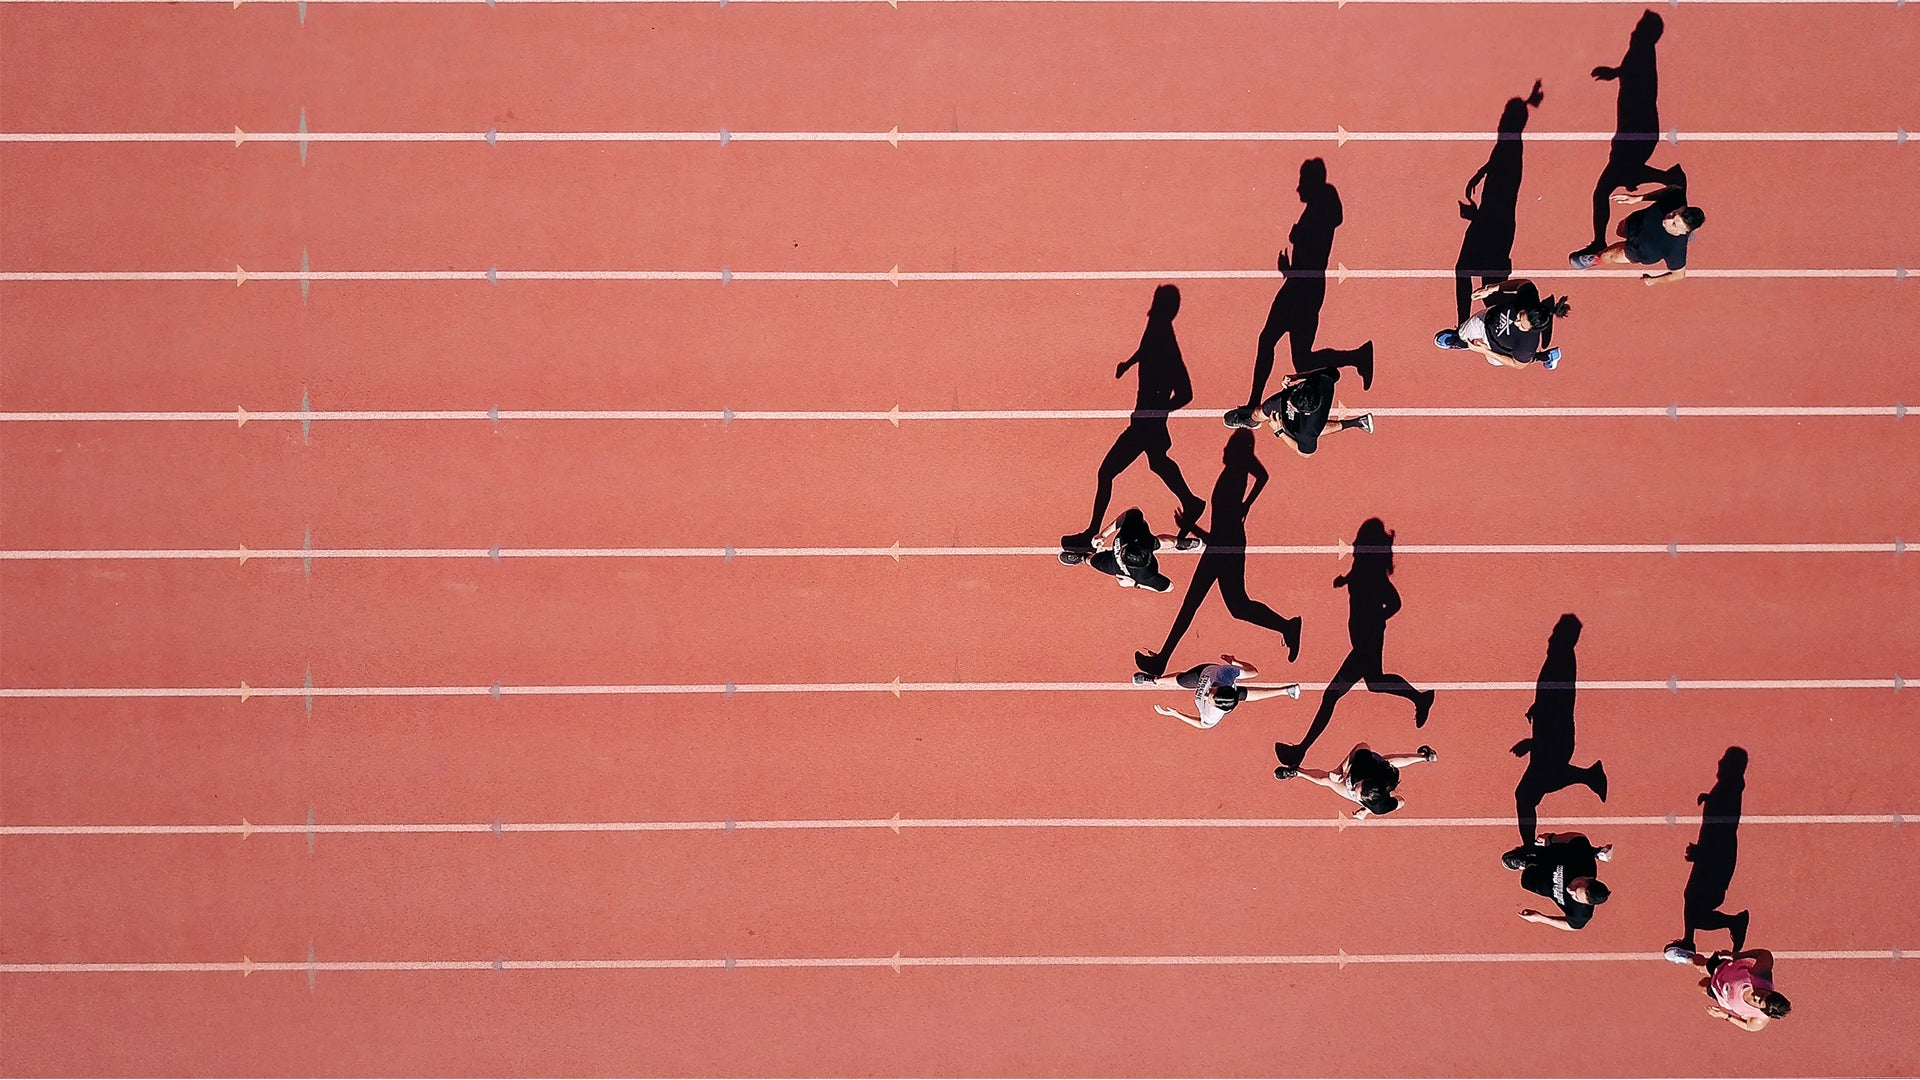 An aerial view of eight runners on a track, in a 'V' formation